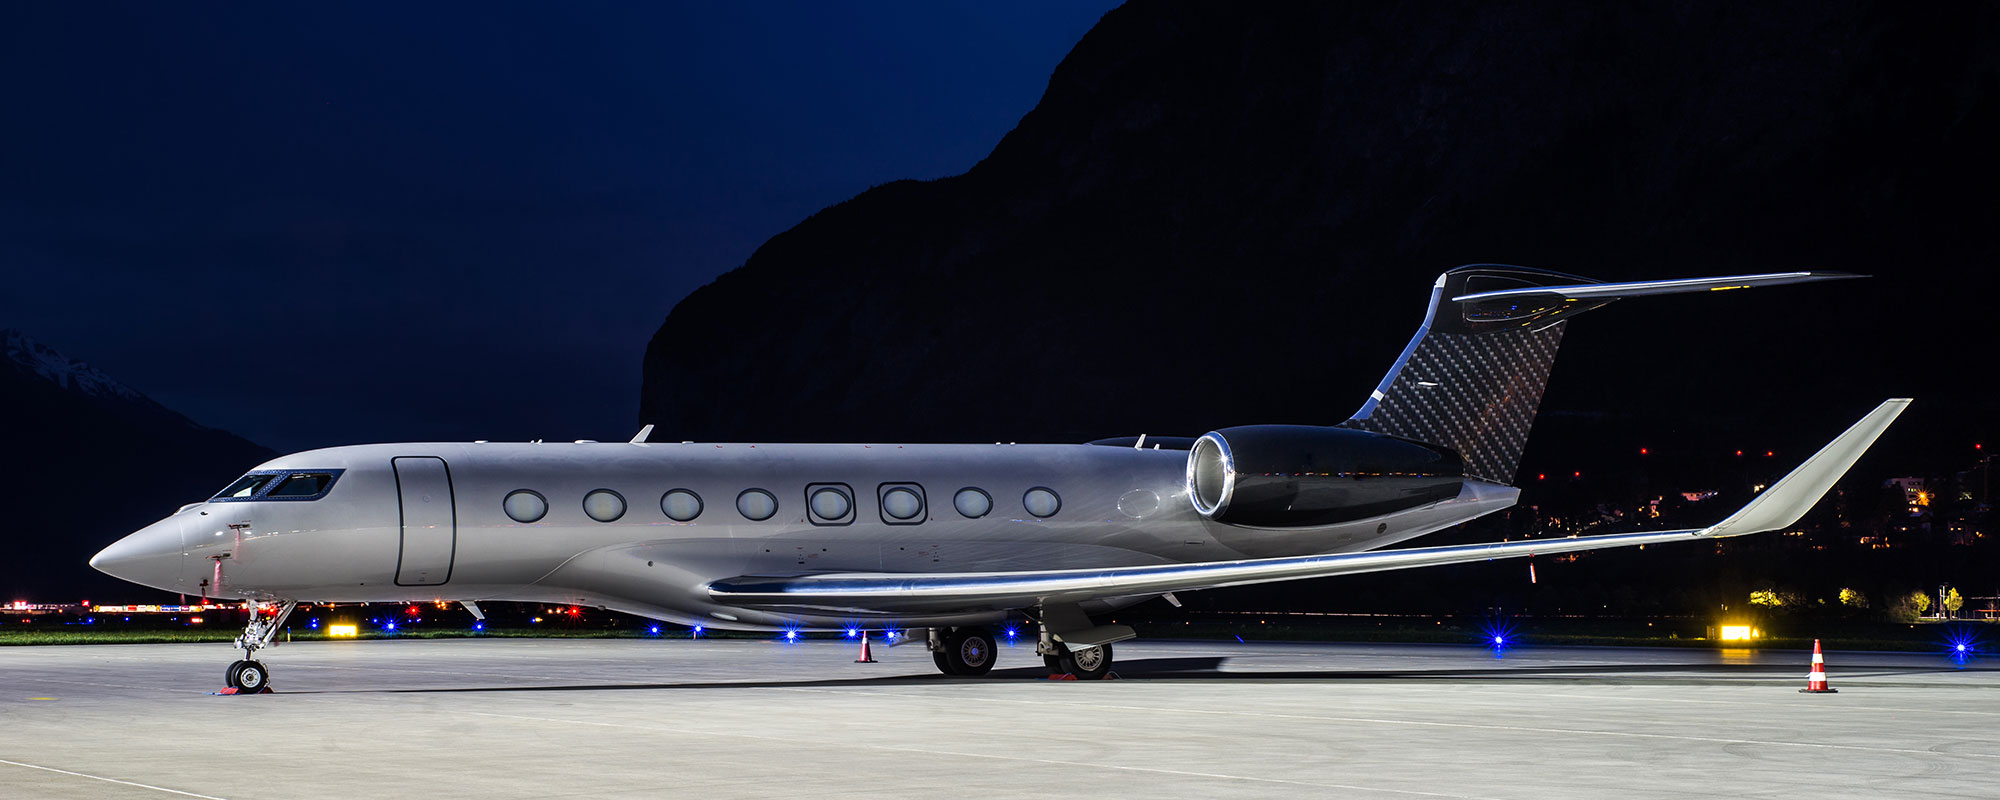 Gulfstream G650 at the airport